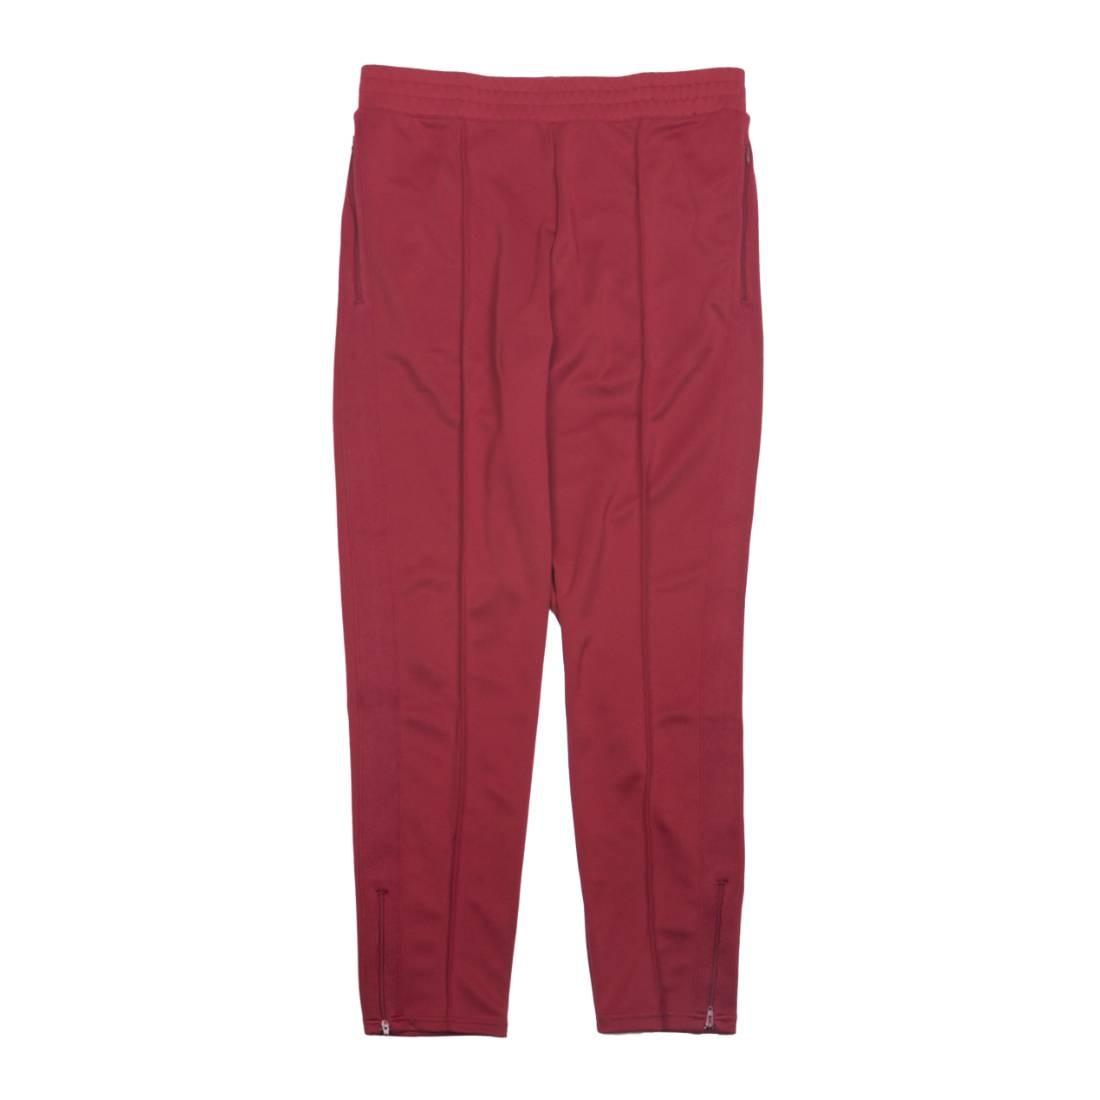 check out e1066 3cb51 nike men m nrg k track pant team red team red